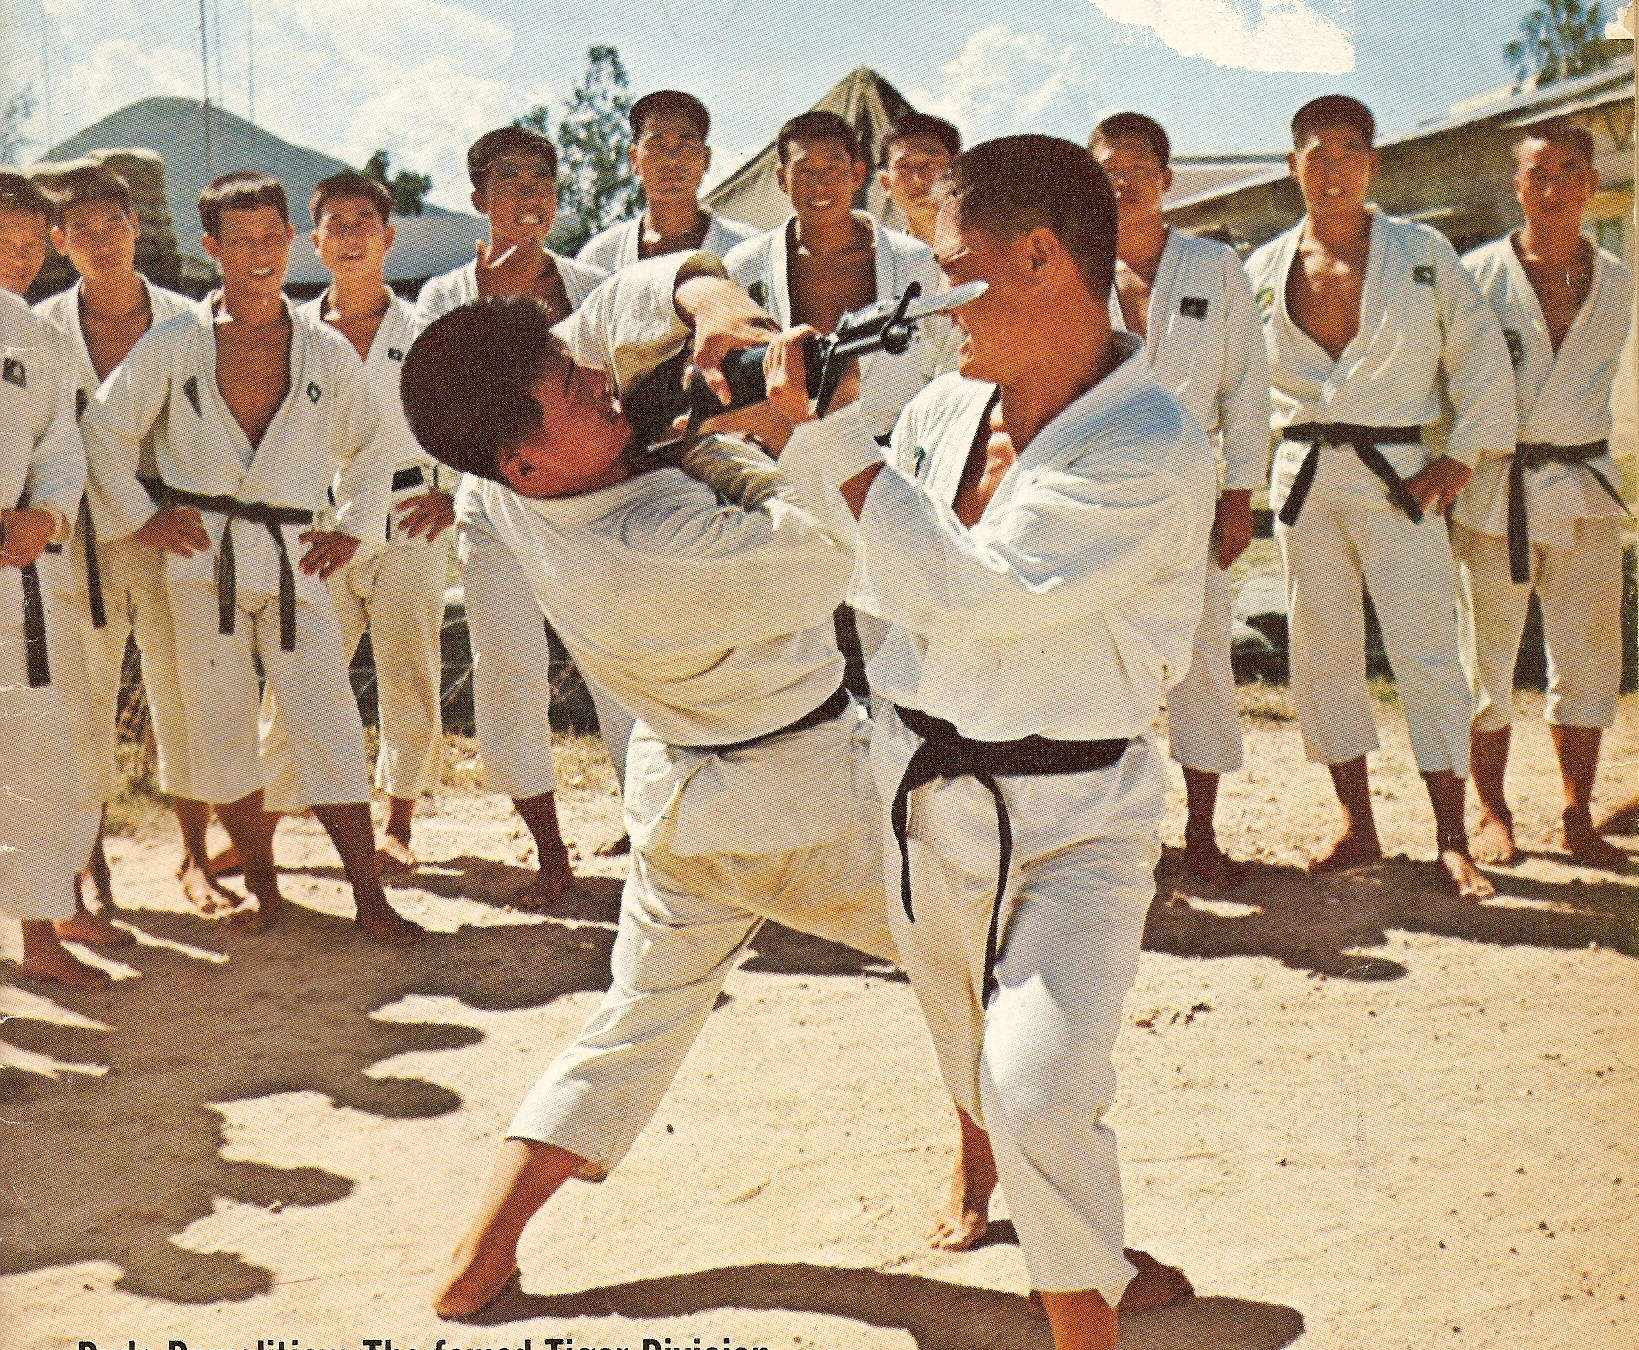 Taekwondo Warriors Training To Kill In Their Black Belts On A Military Base  In Vietnam